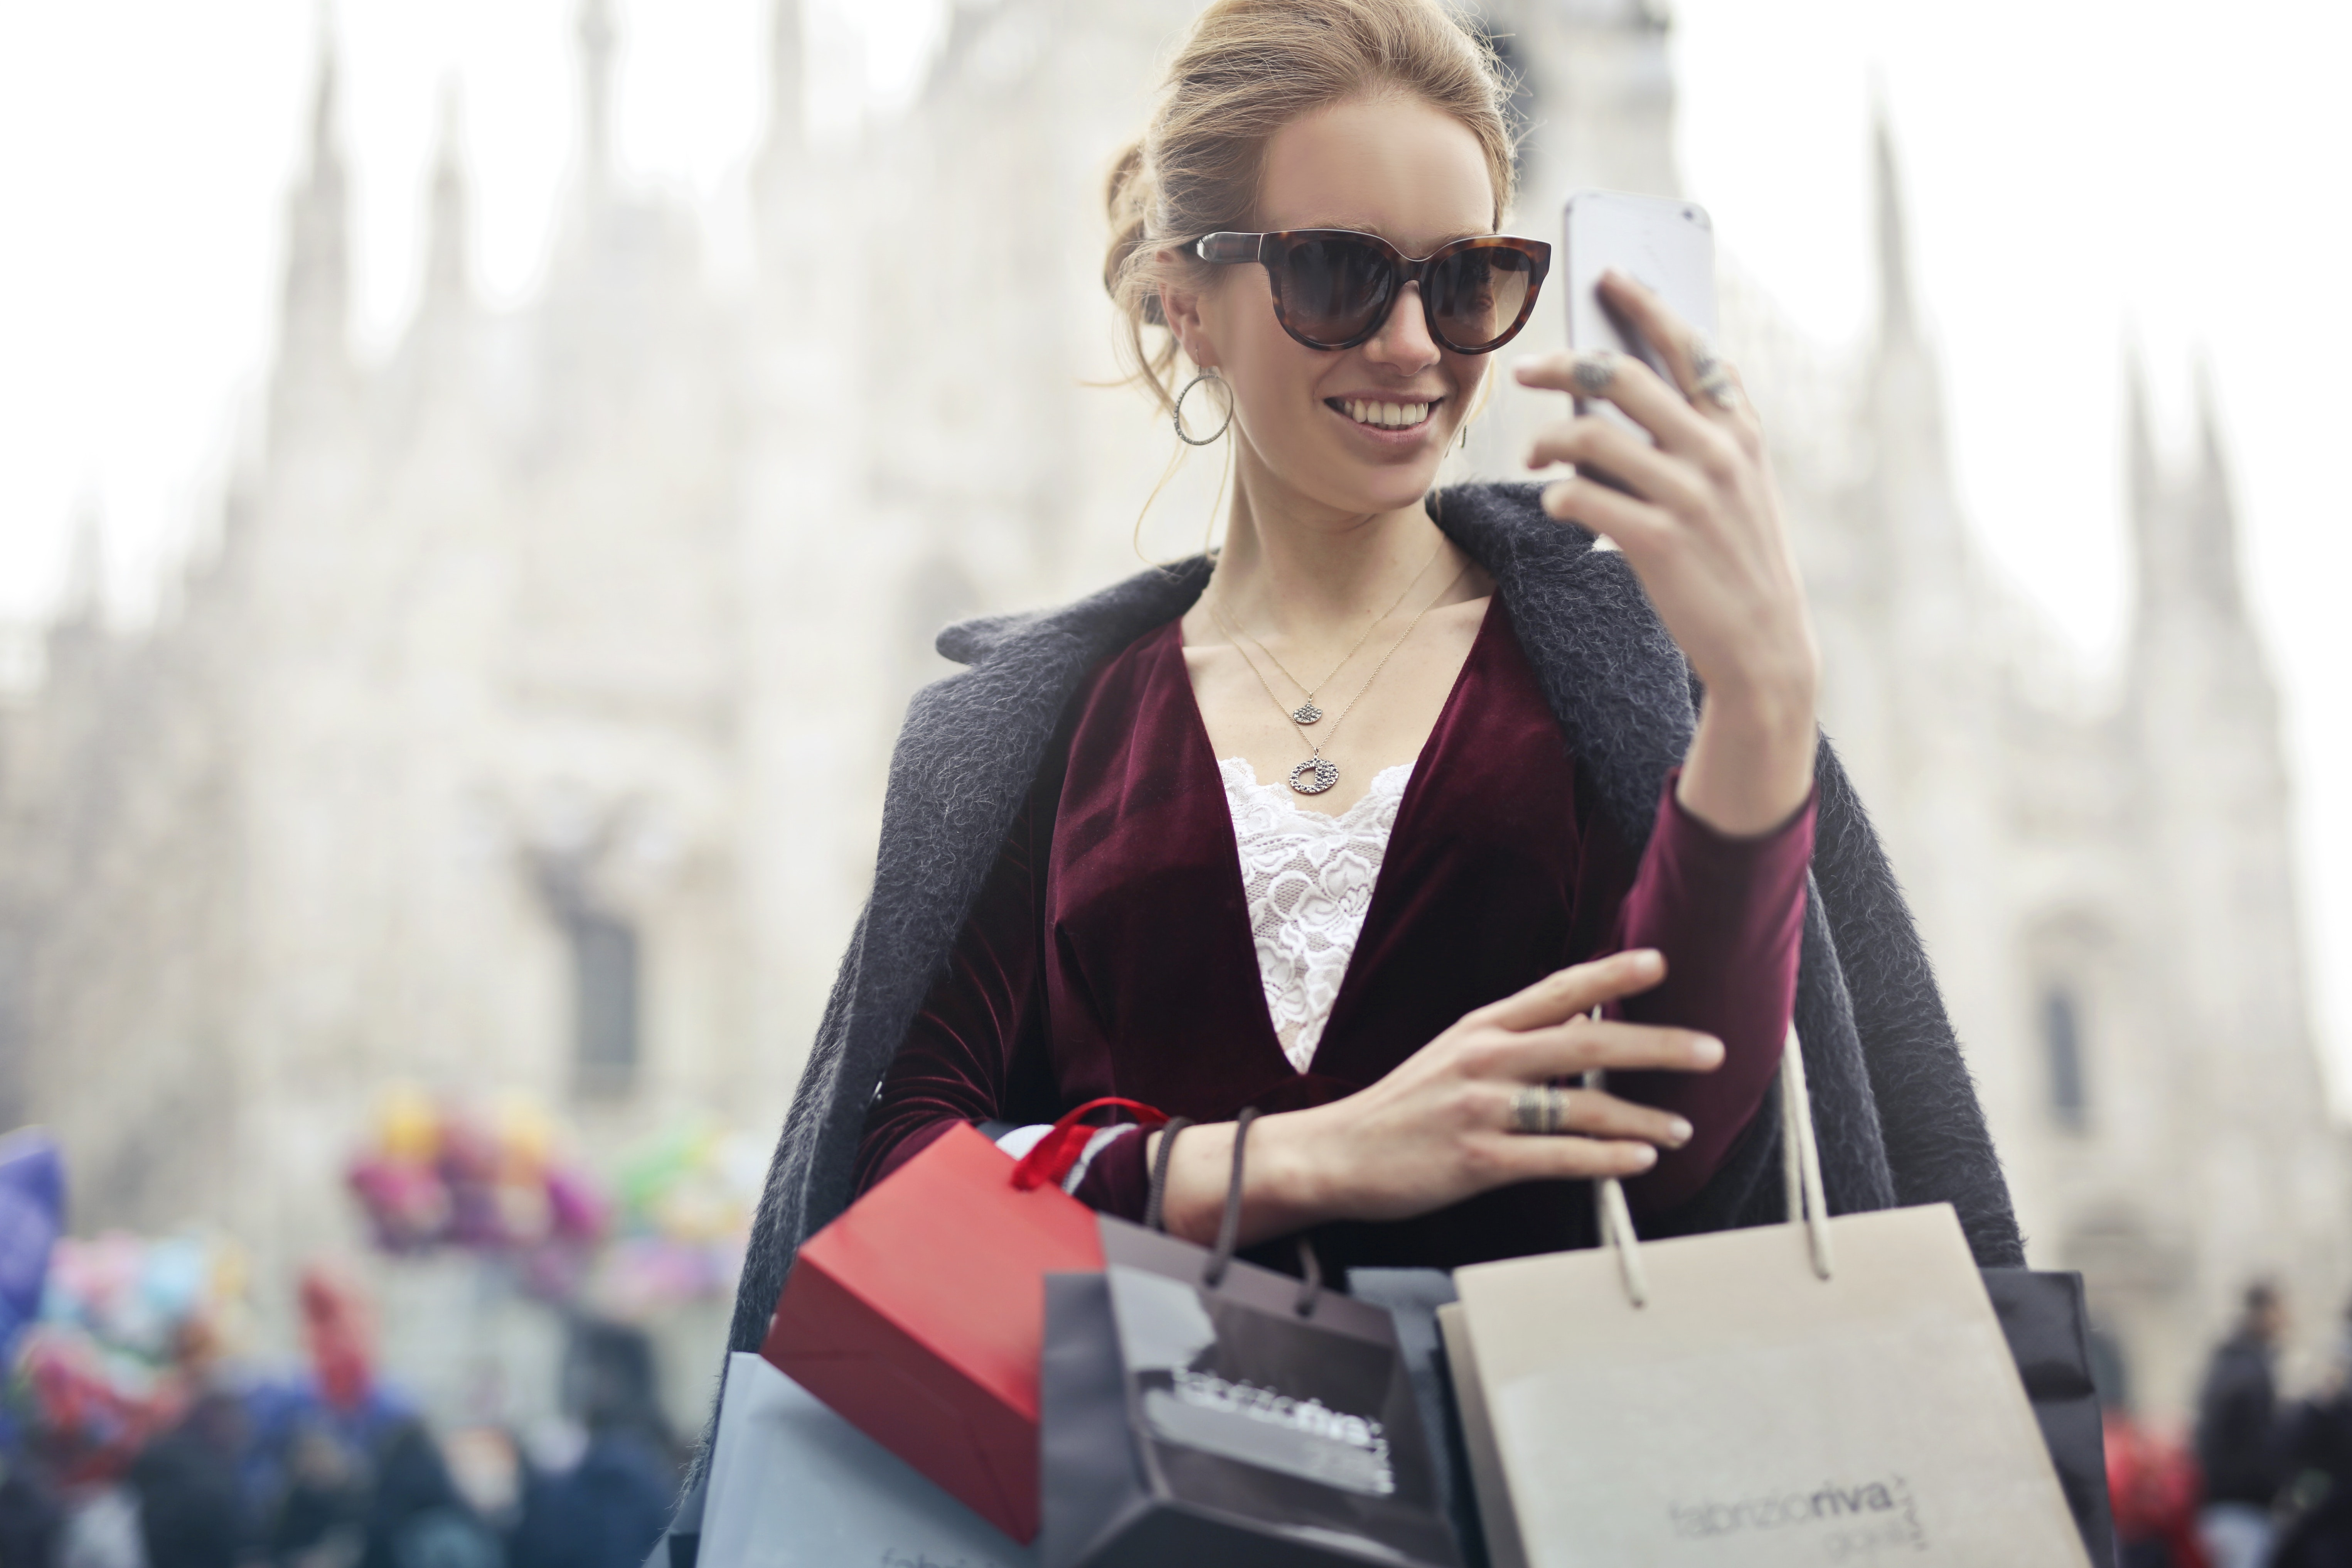 Woman in maroon long-sleeved top holding smartphone with shopping bags at daytime photo